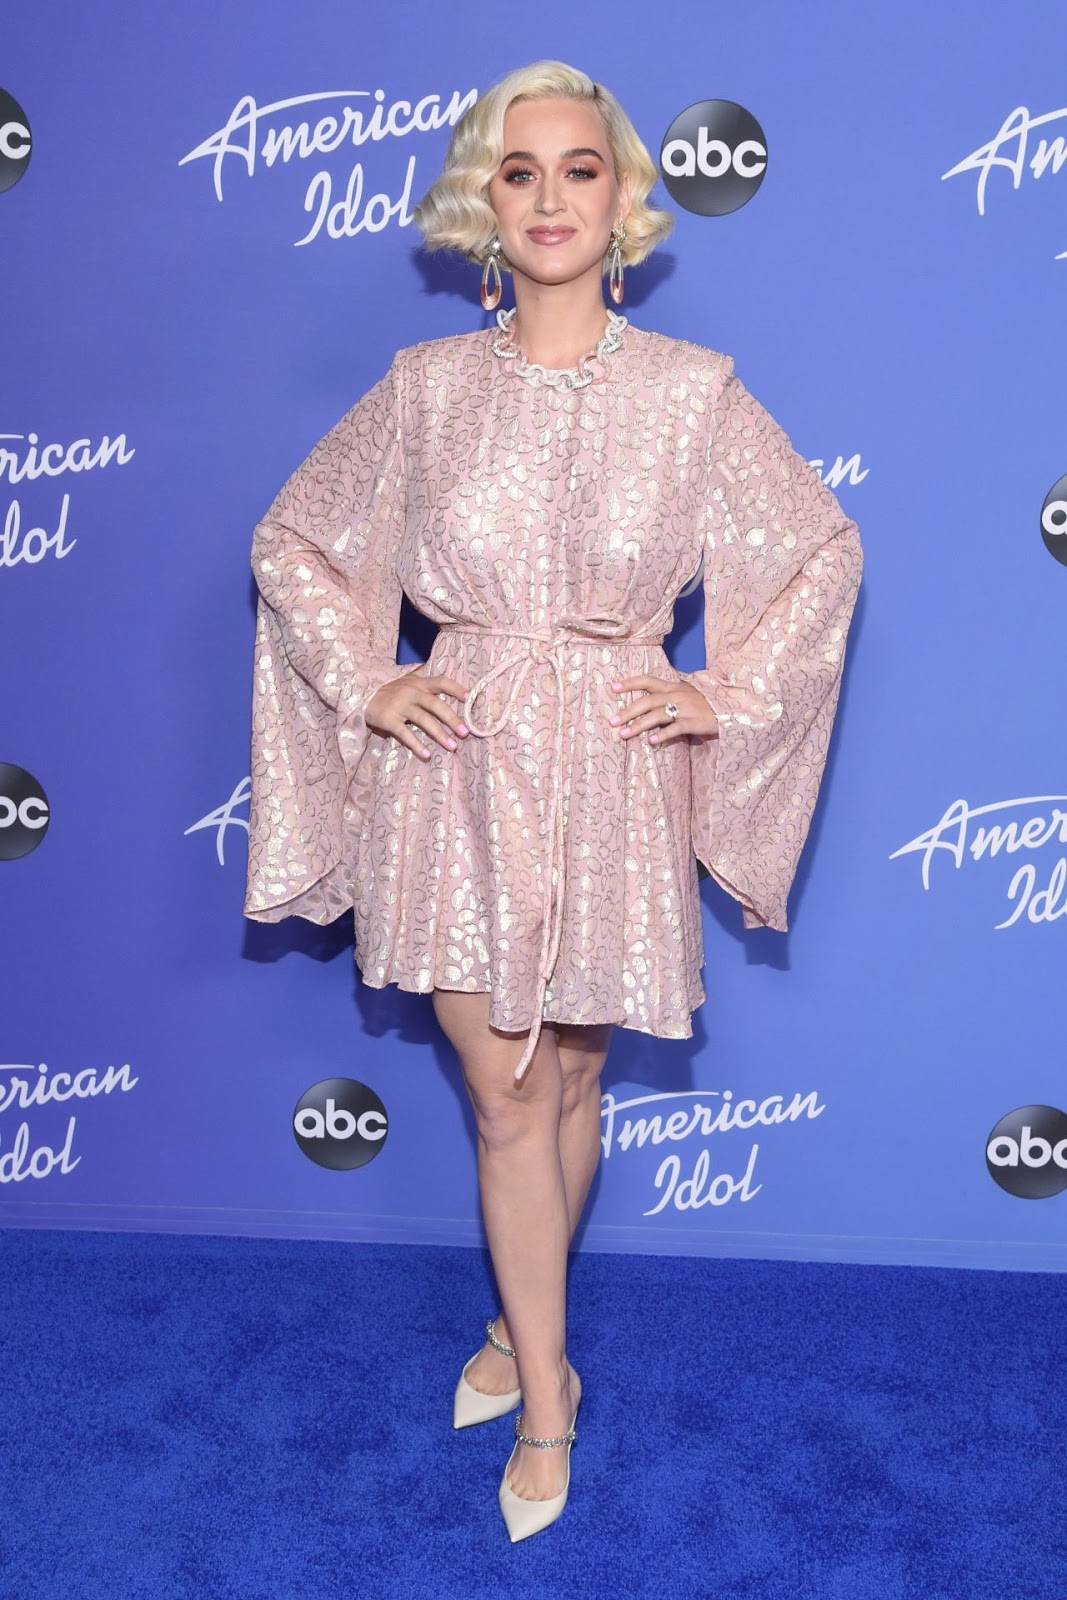 Katy Perry is precious in pastel pink as she rings in the third season of American Idol at the show's premiere party in Hollywood